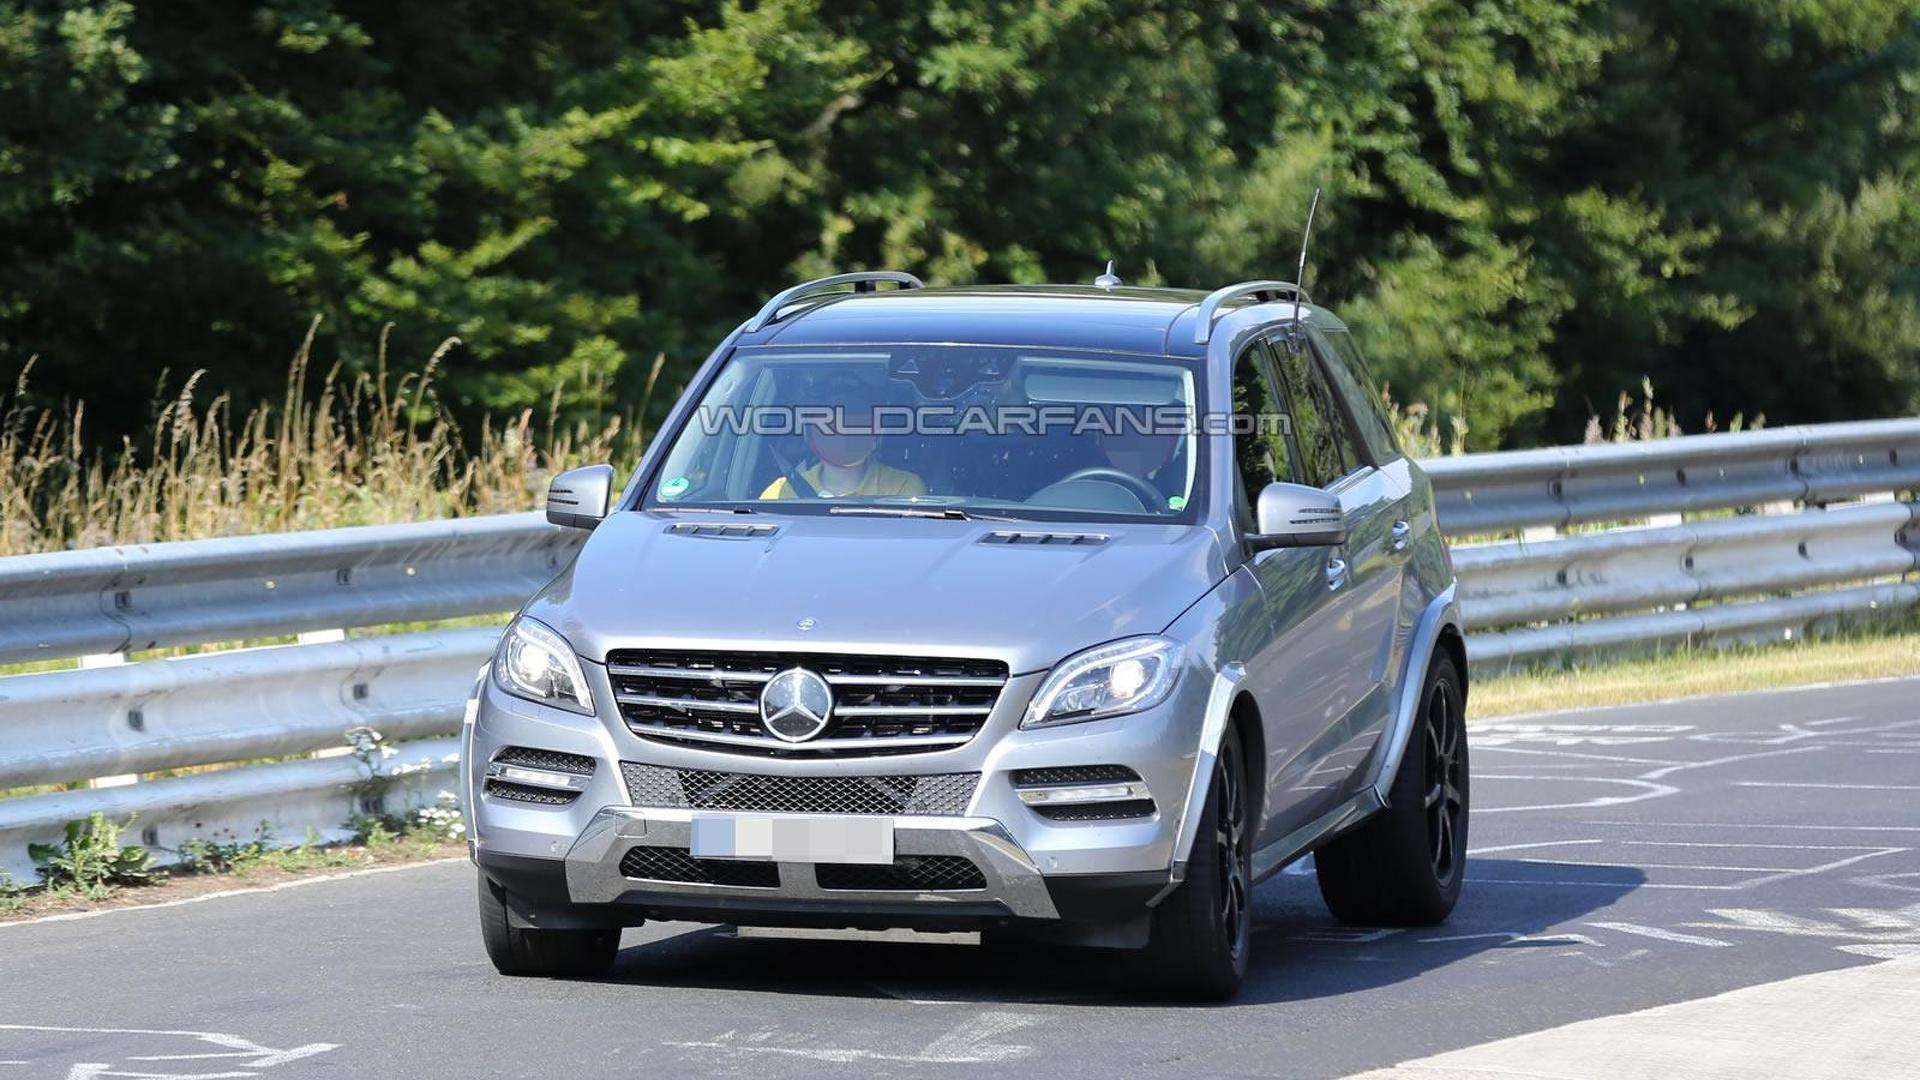 2015 mercedes benz mlc spied undergoing testing. Black Bedroom Furniture Sets. Home Design Ideas